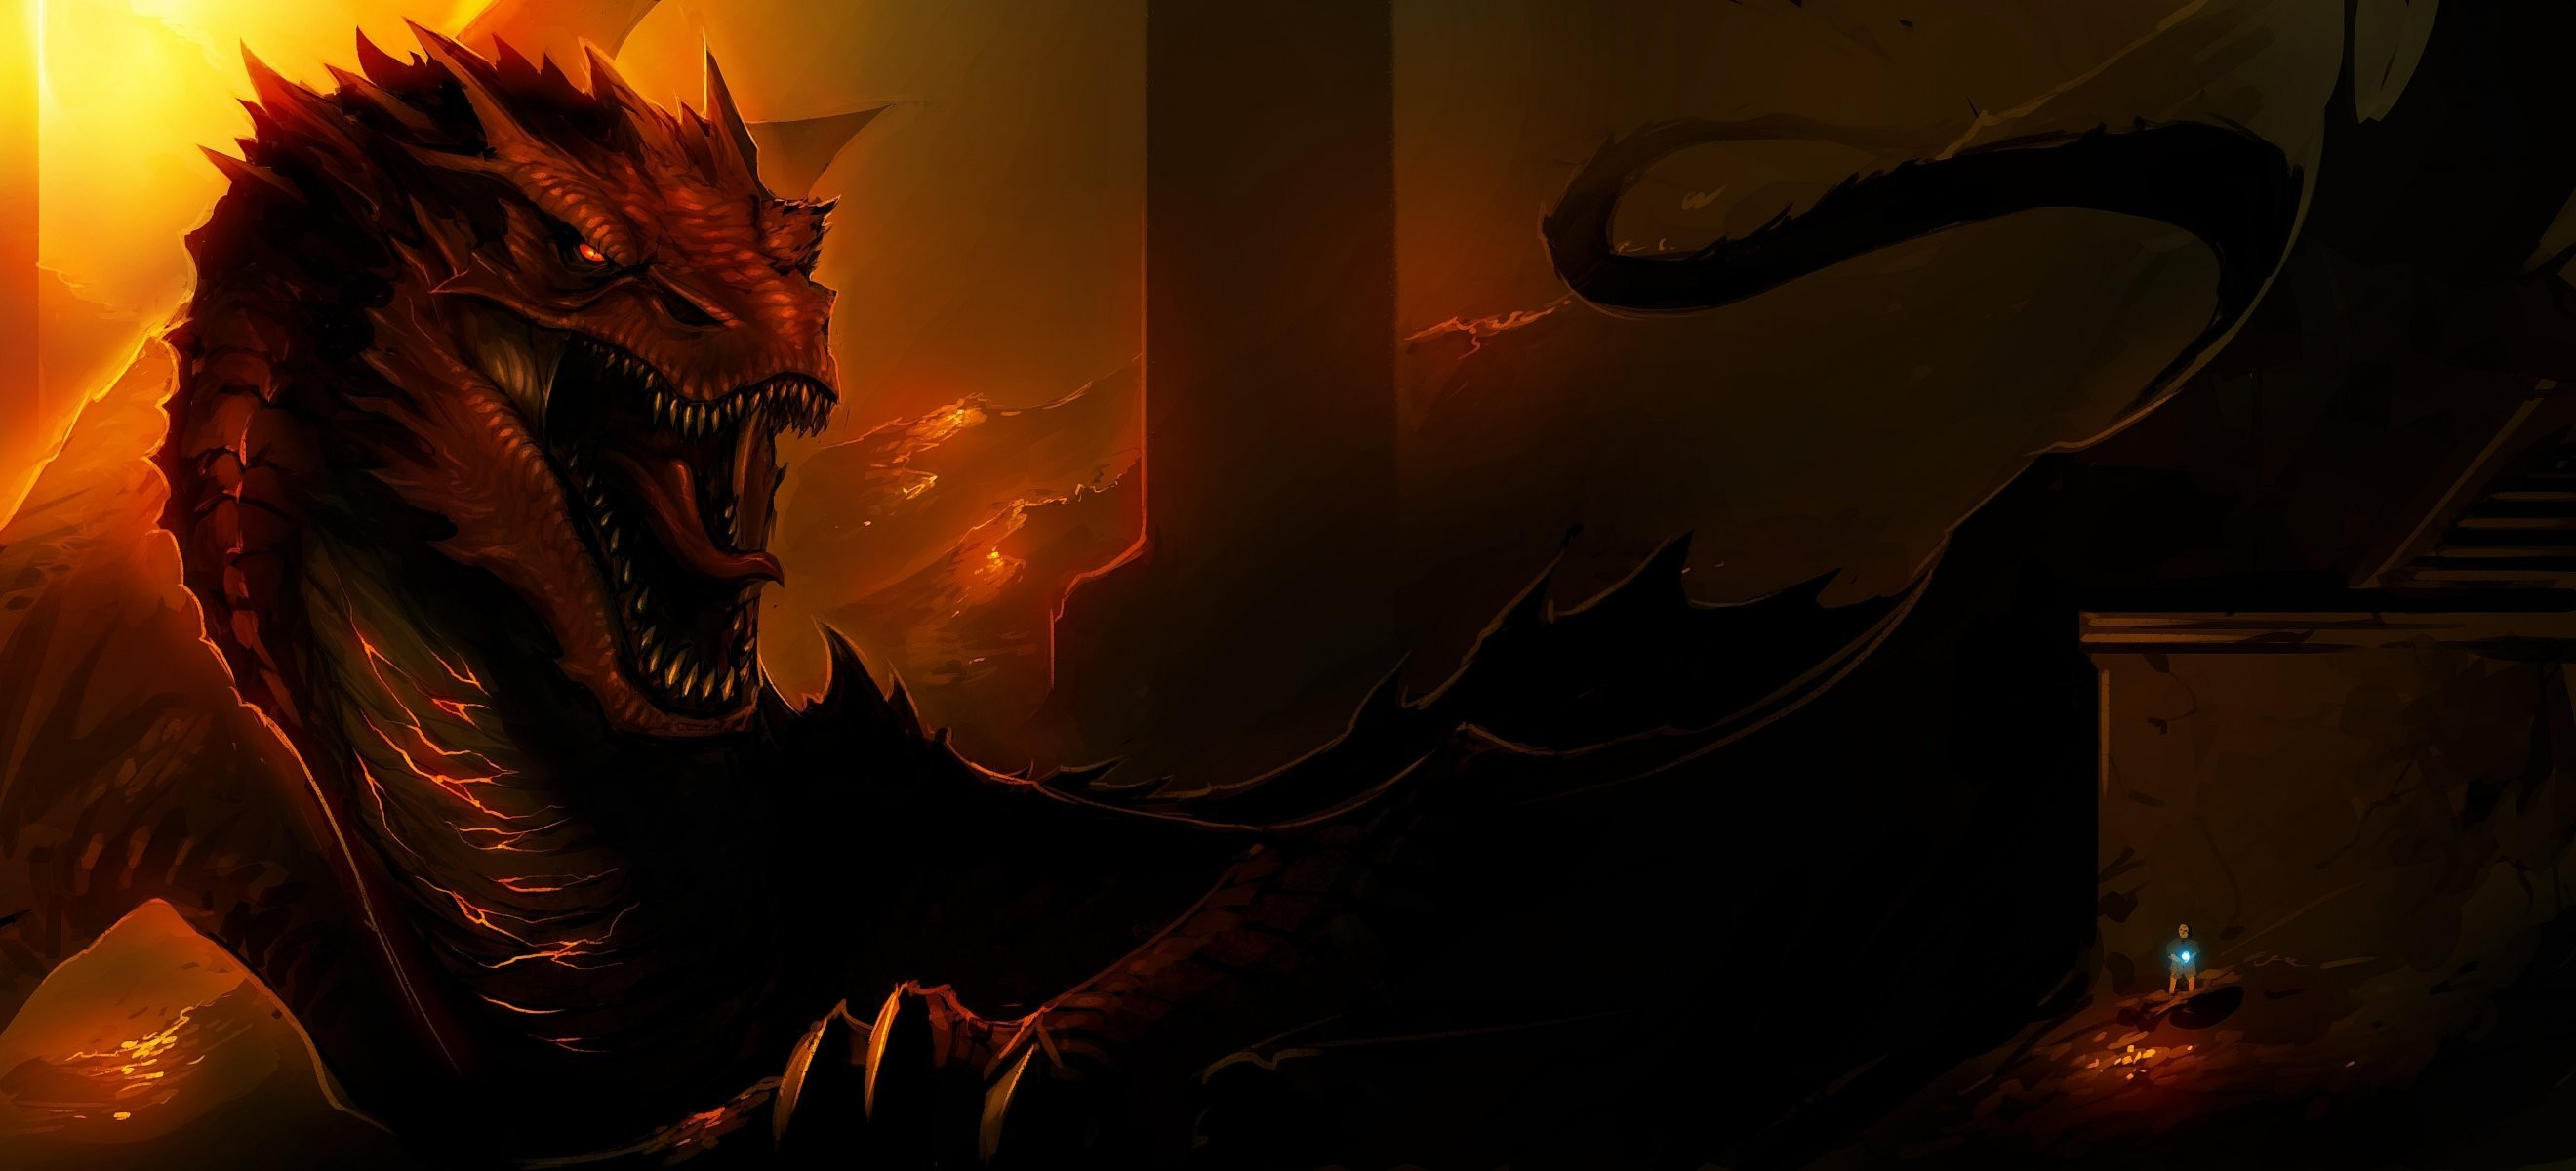 smaug lord of the rings fire dragon art the hobbit the hobbit: the  desolation of